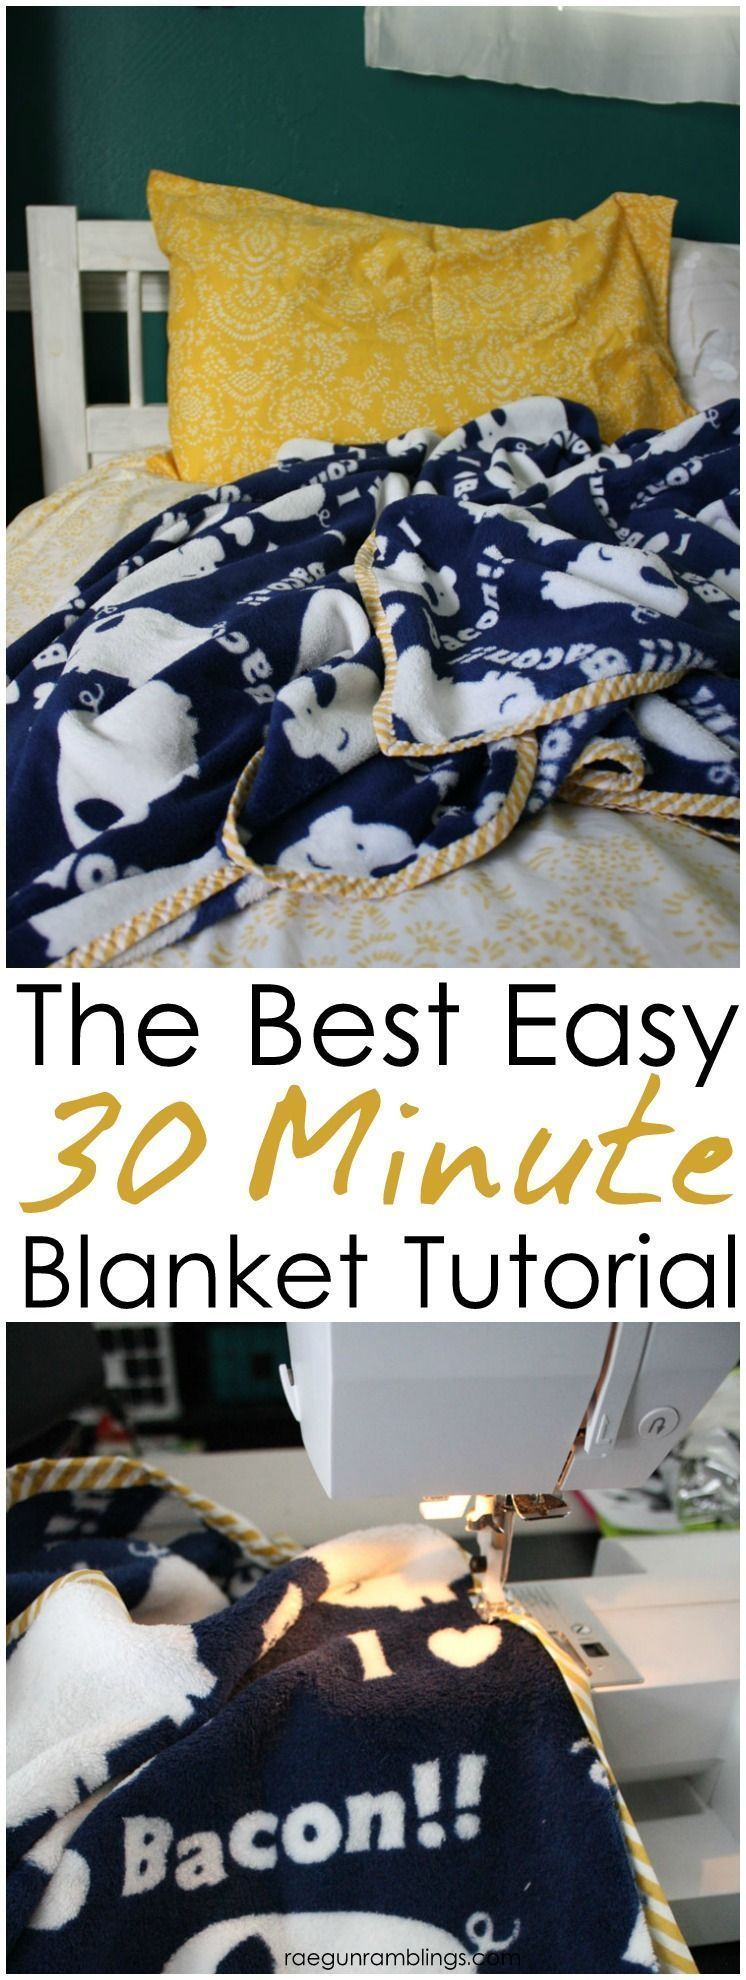 Alright today ium showing you two amazing blanket tutorials for